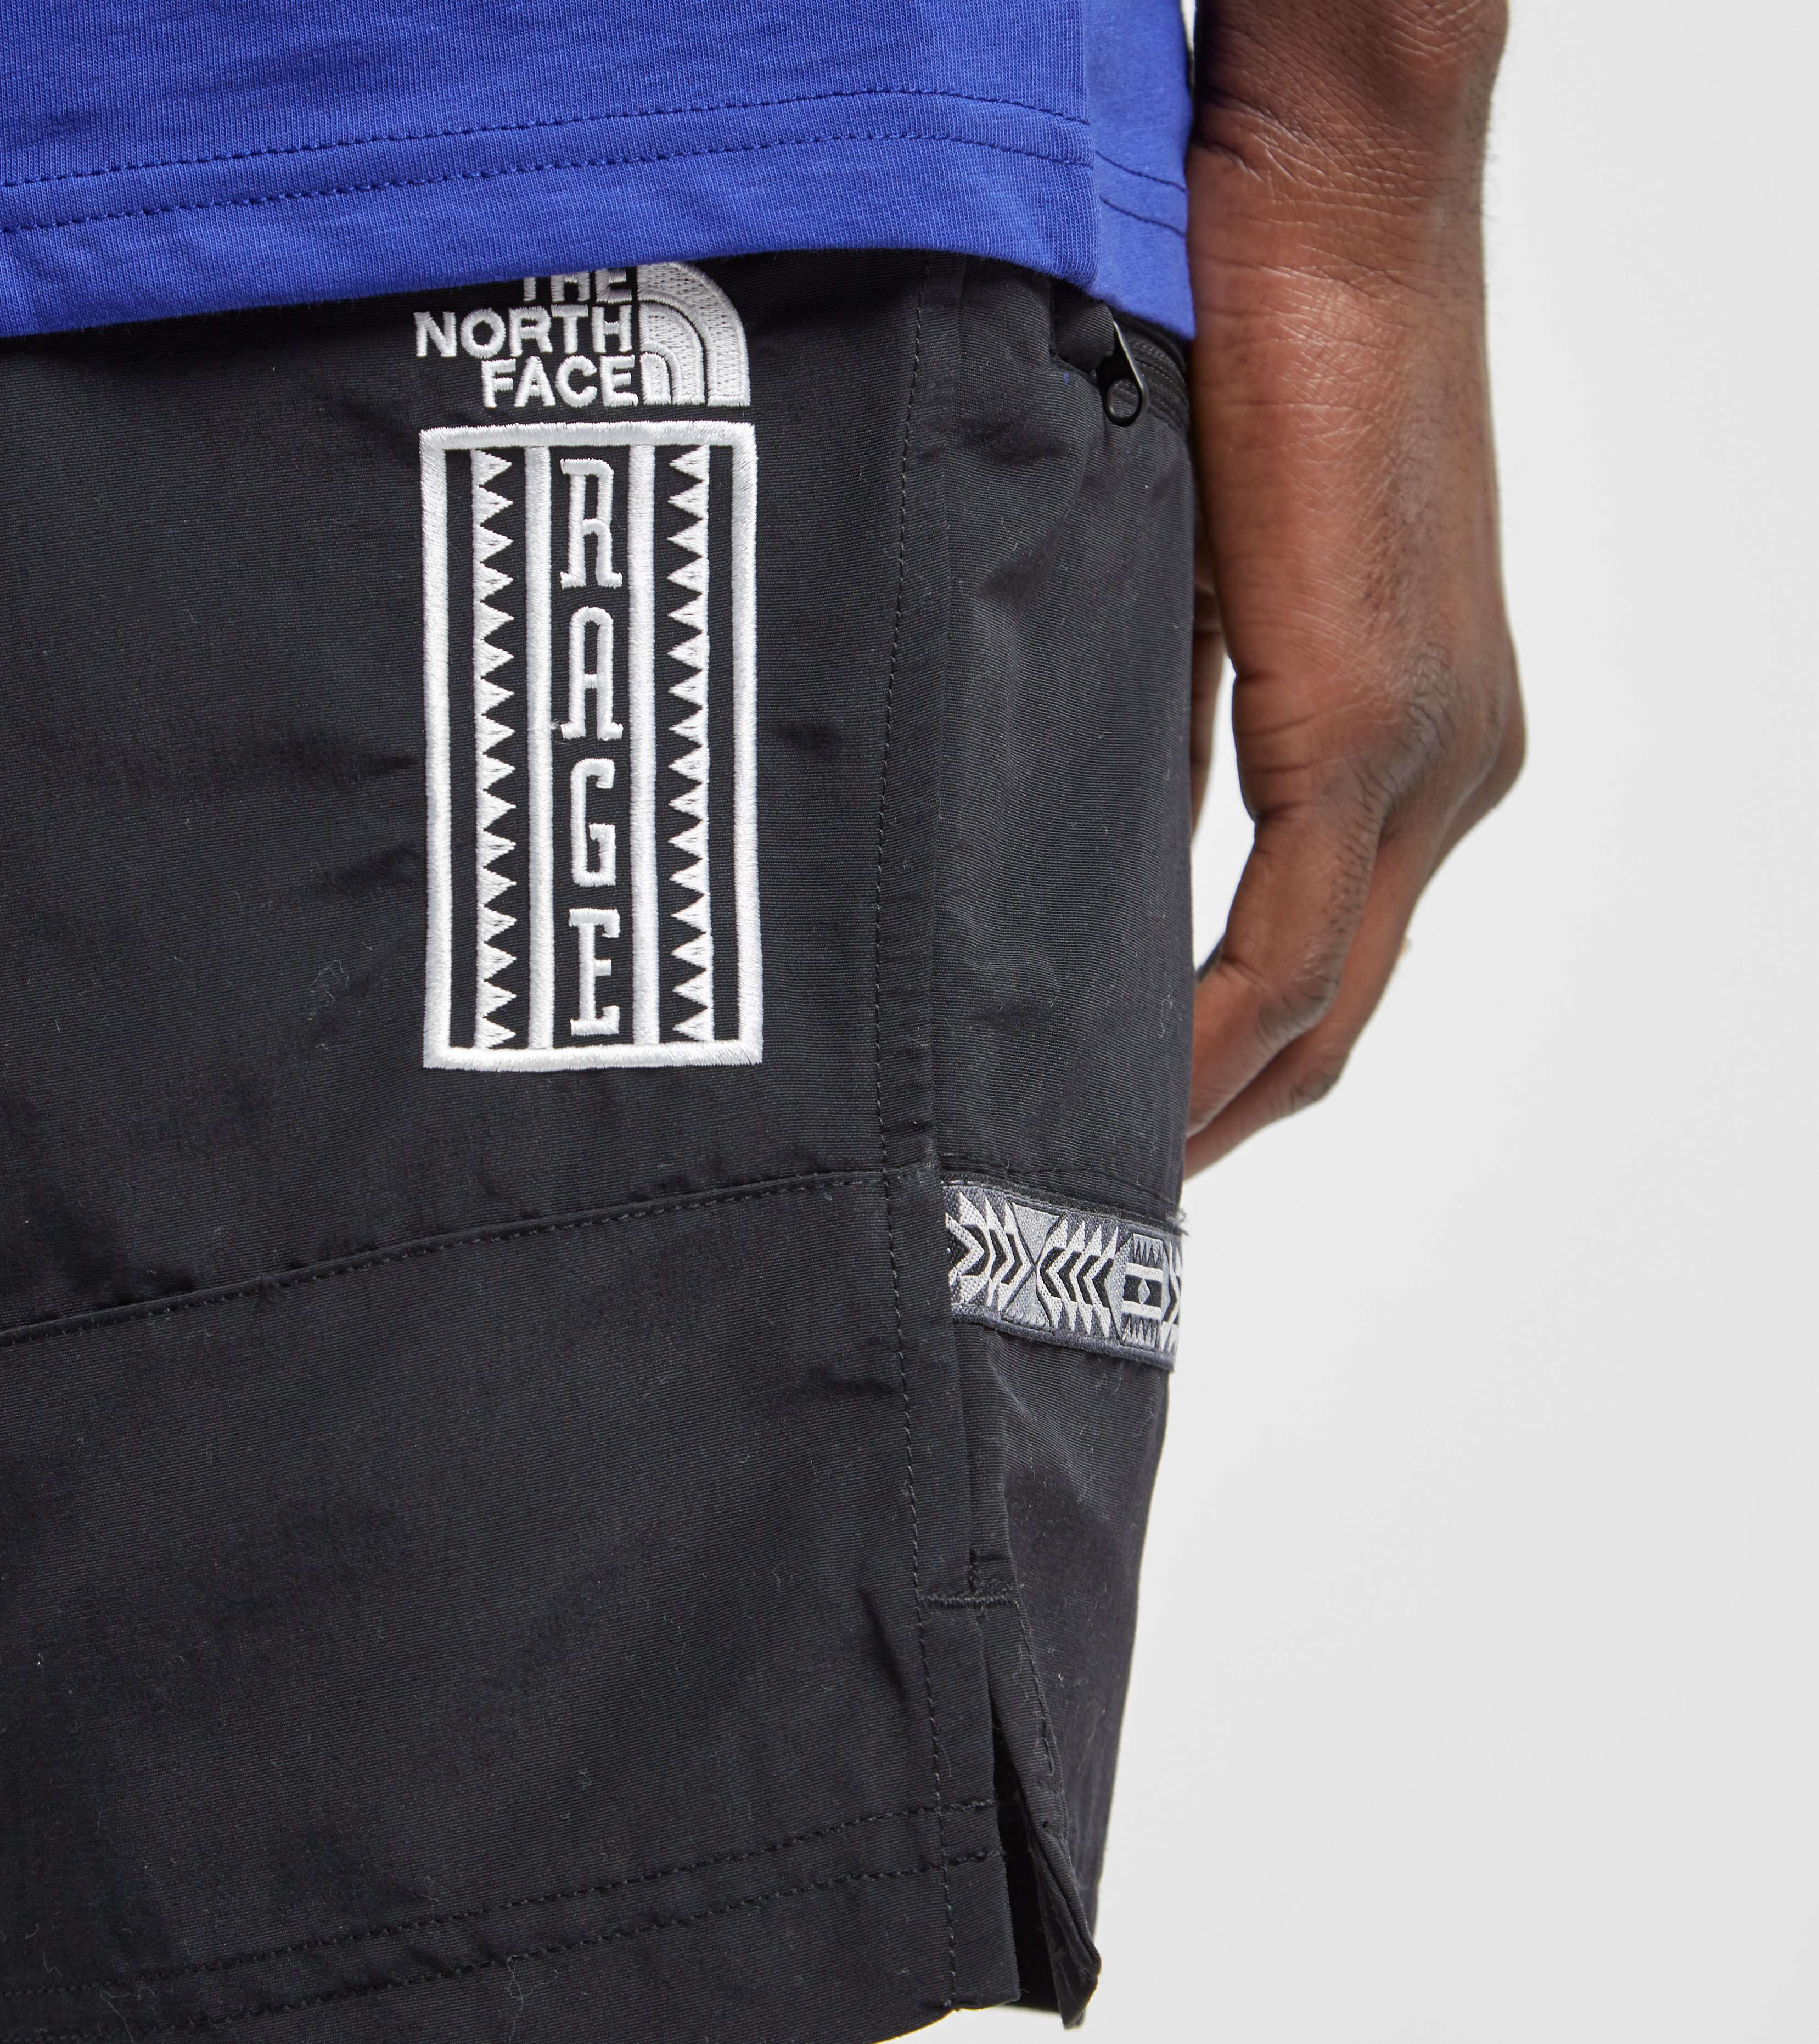 The North Face Rage '92 Lounger Shorts